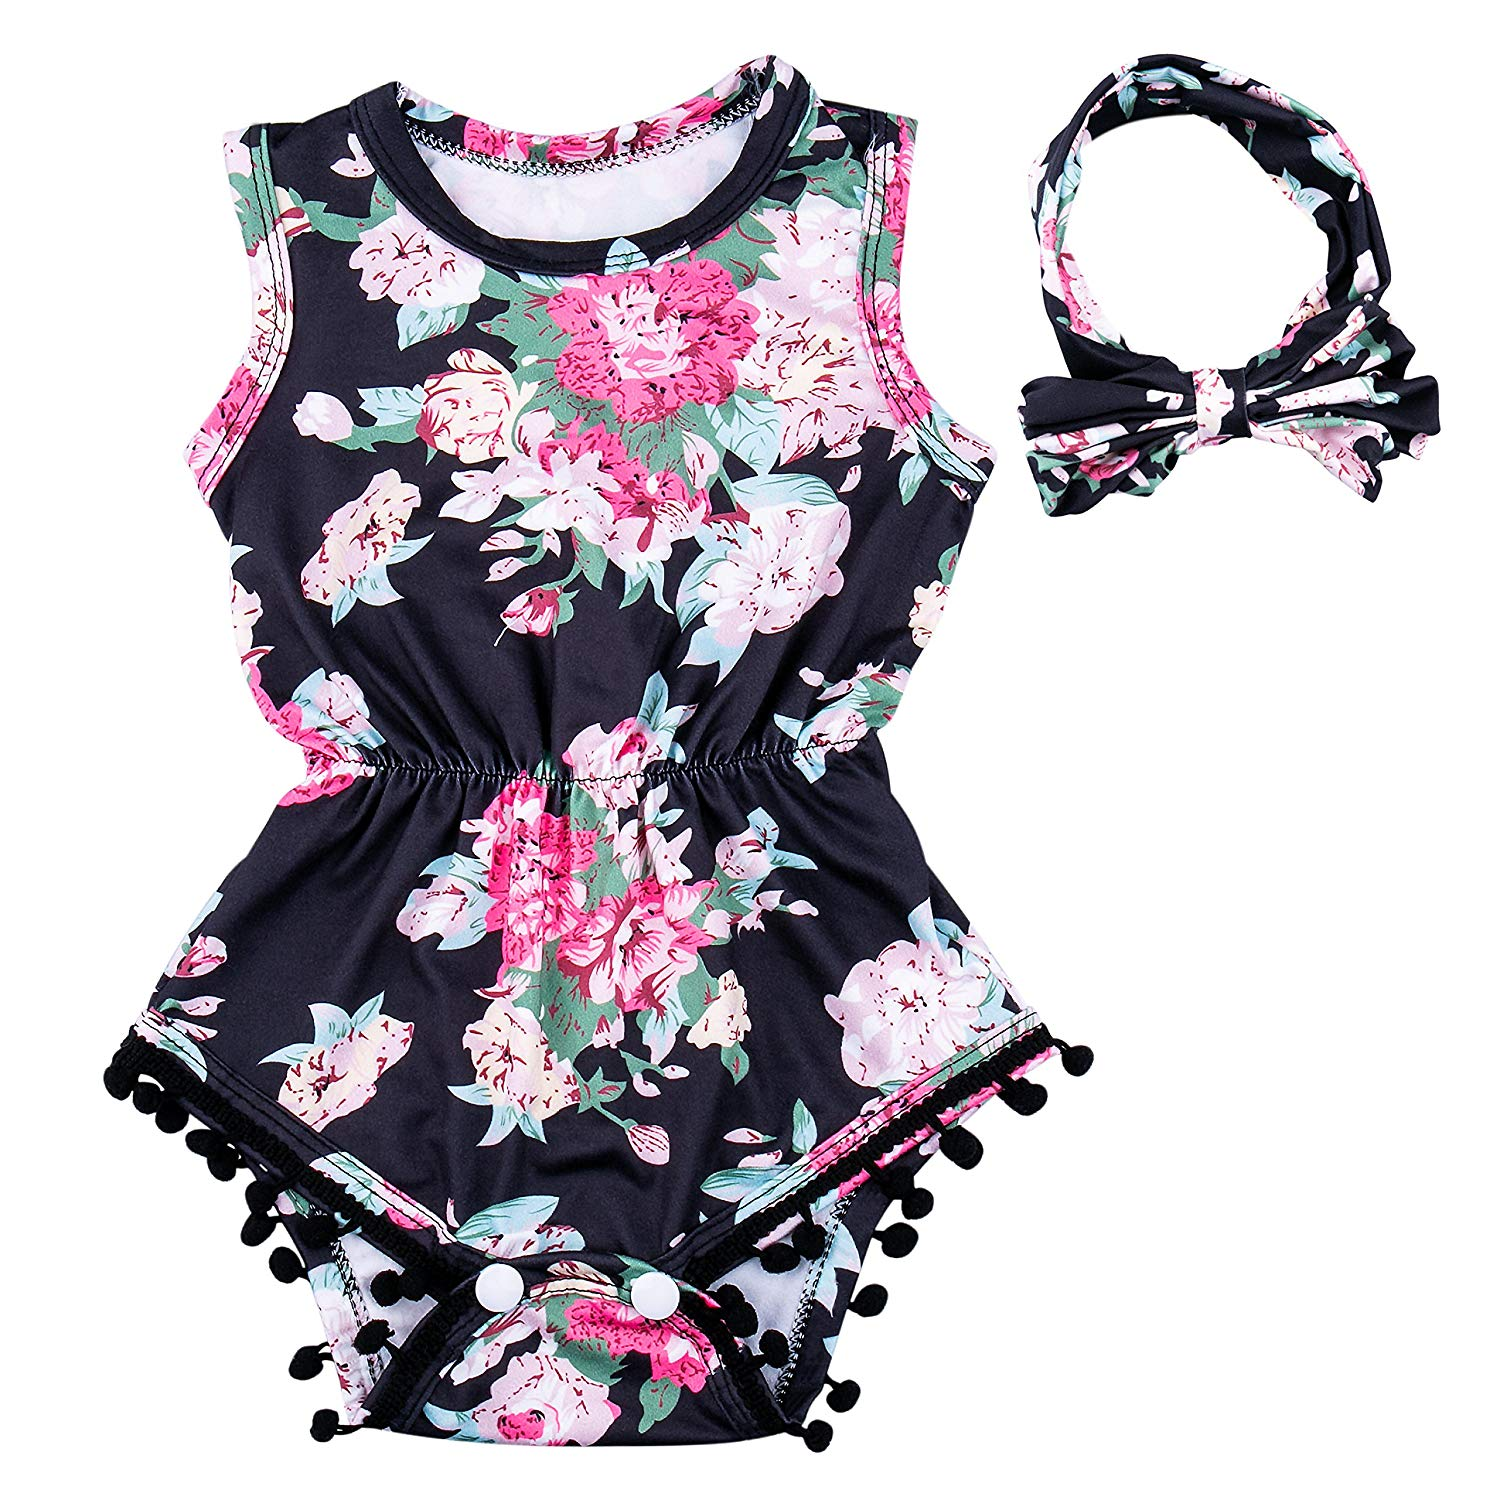 Ezire Baby Girls Romper, Apparel Baby Sleeveless Romper Outfits Set, Floral Baby Tassel Jumpsuit with Bow-Knot Headband